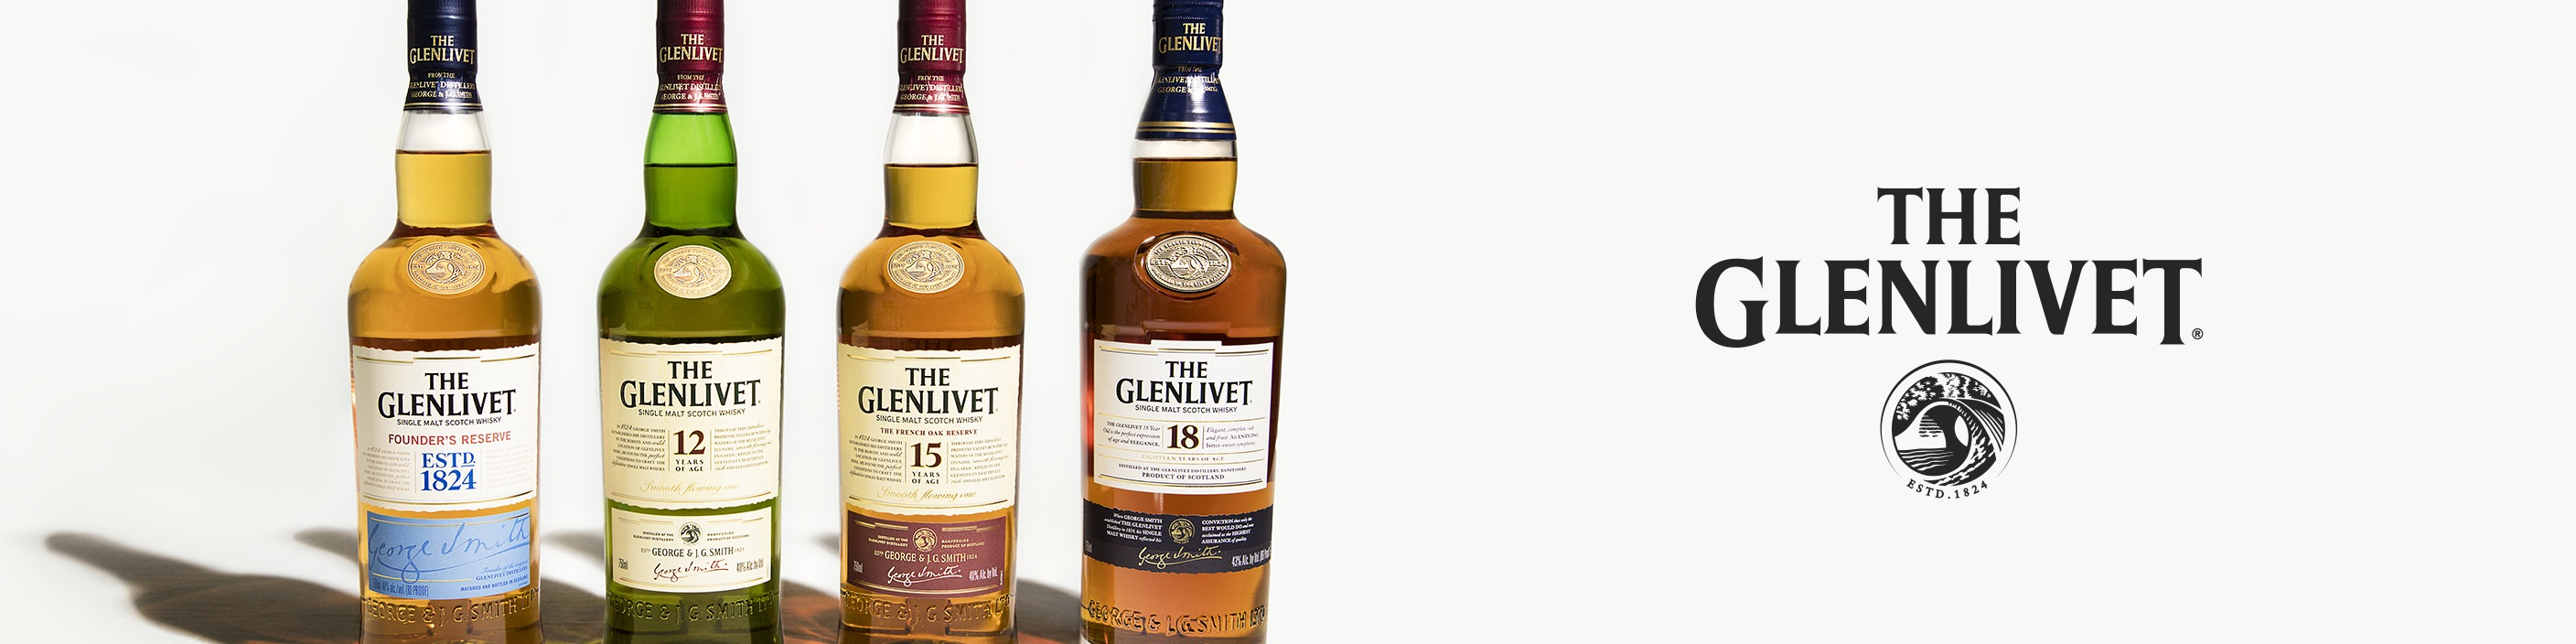 Founded in 1824, The Glenlivet is the leading single malt whisky in the U.S. with its smooth and fruity flavor profile. Our rule for drinking scotch? Drink it the way you like it – neat, on the rocks or in a cocktail.  Buy The Glenlivet online now from your nearby liquor store via Minibar Delivery.